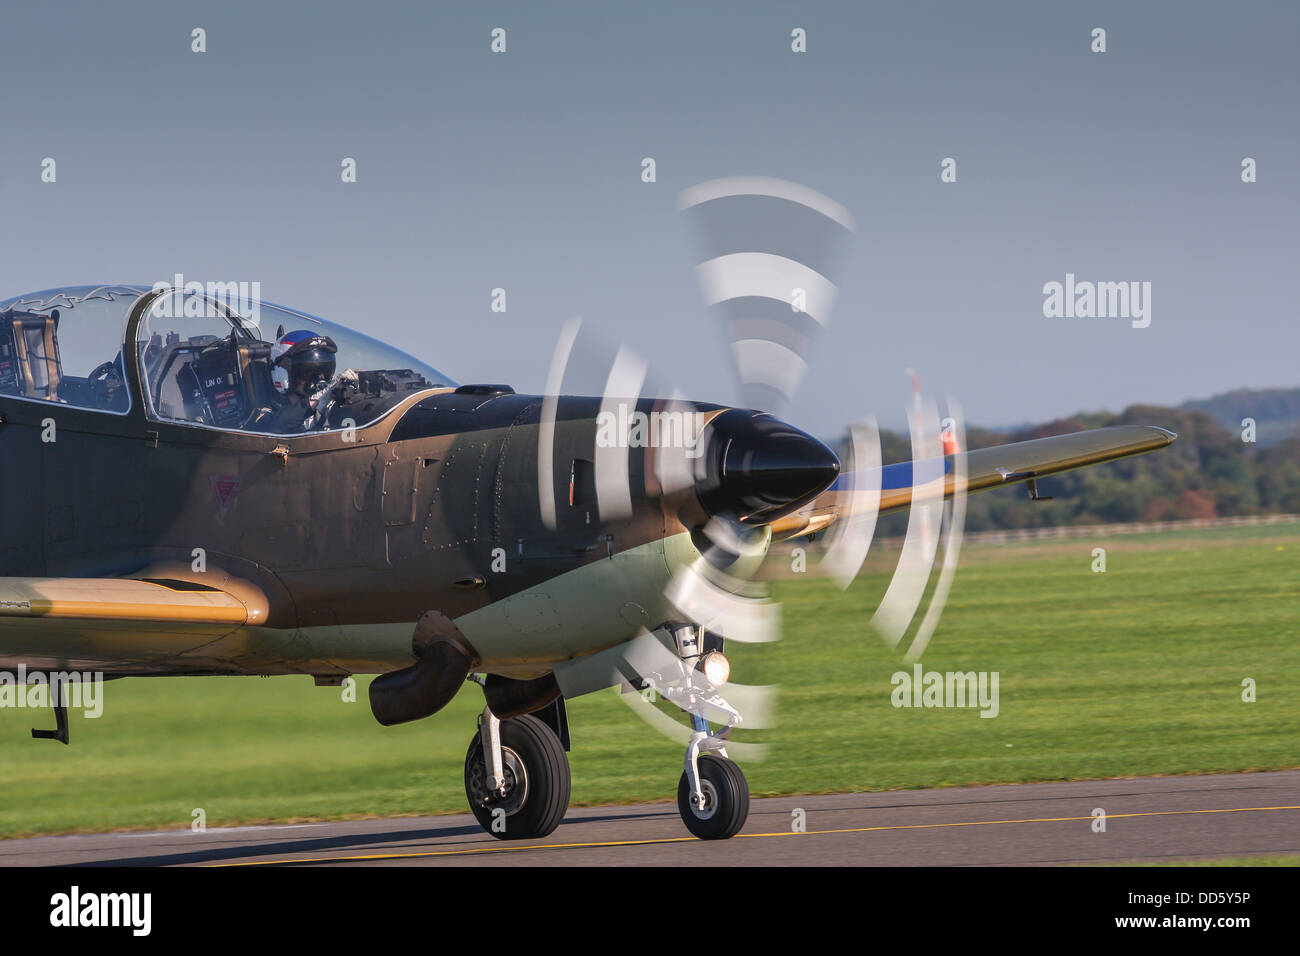 Aeroplane with spinning propellor preparing for takeoff at airshow, England, United Kingdom - Stock Image